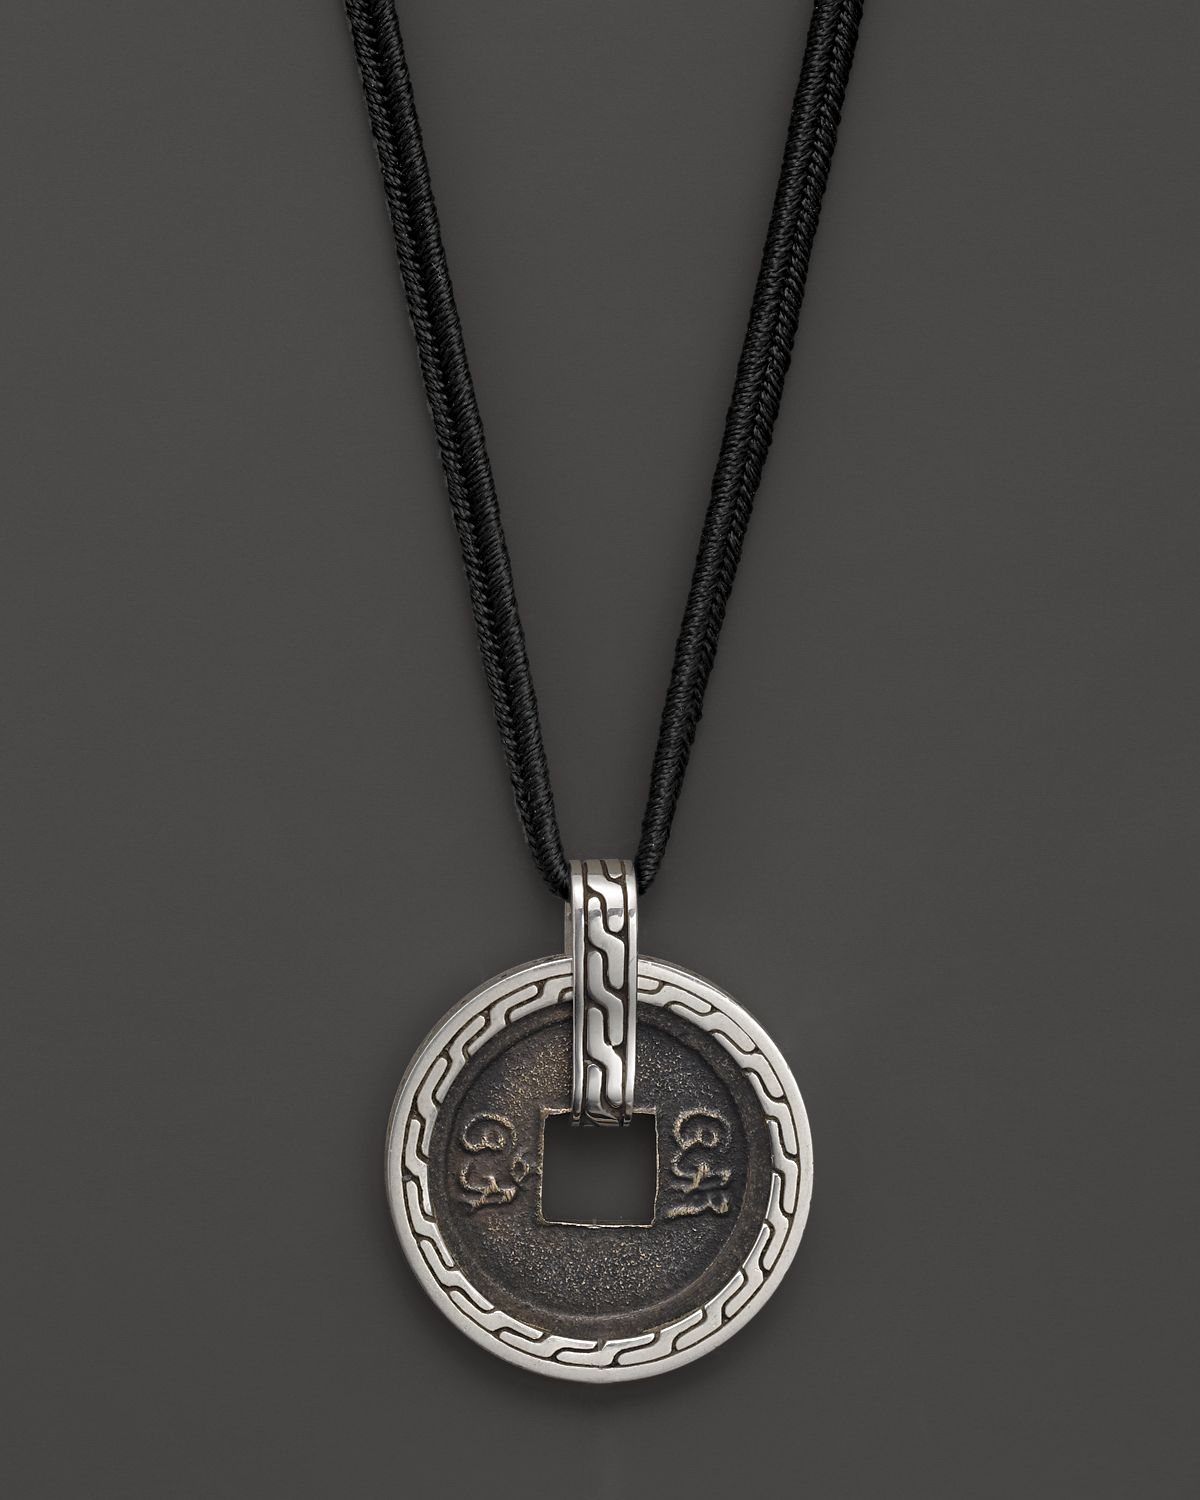 liberman mg necklace black ottomon coin product karen pendant ancient diamond